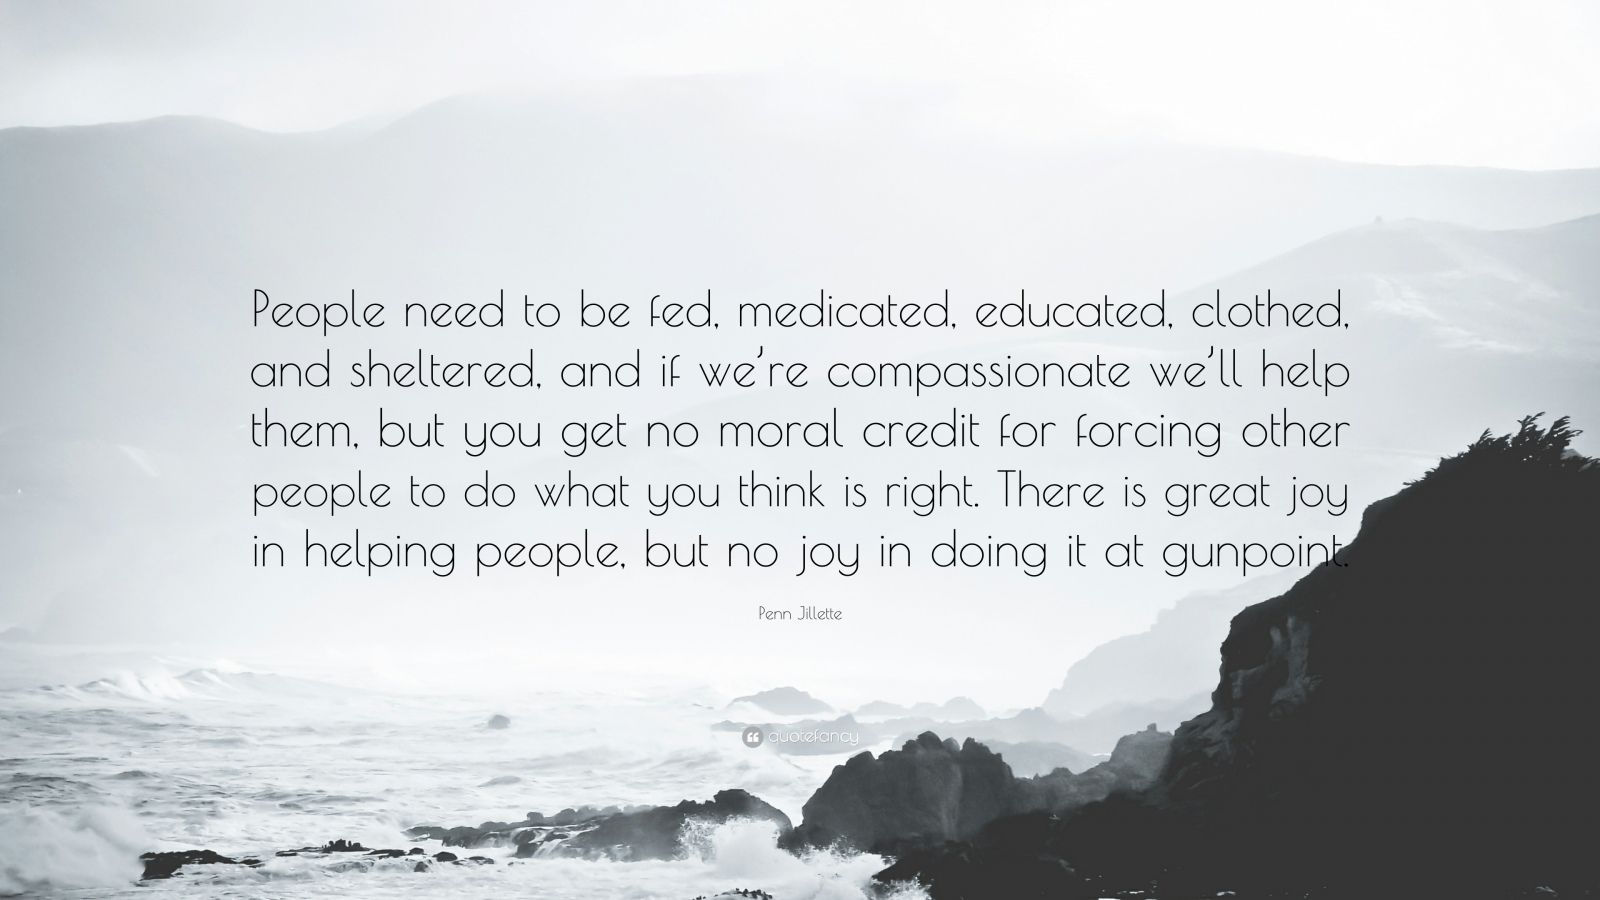 """Penn Jillette Quote: """"People need to be fed, medicated, educated, clothed, and sheltered, and if we're compassionate we'll help them, but you get no moral credit for forcing other people to do what you think is right. There is great joy in helping people, but no joy in doing it at gunpoint."""""""